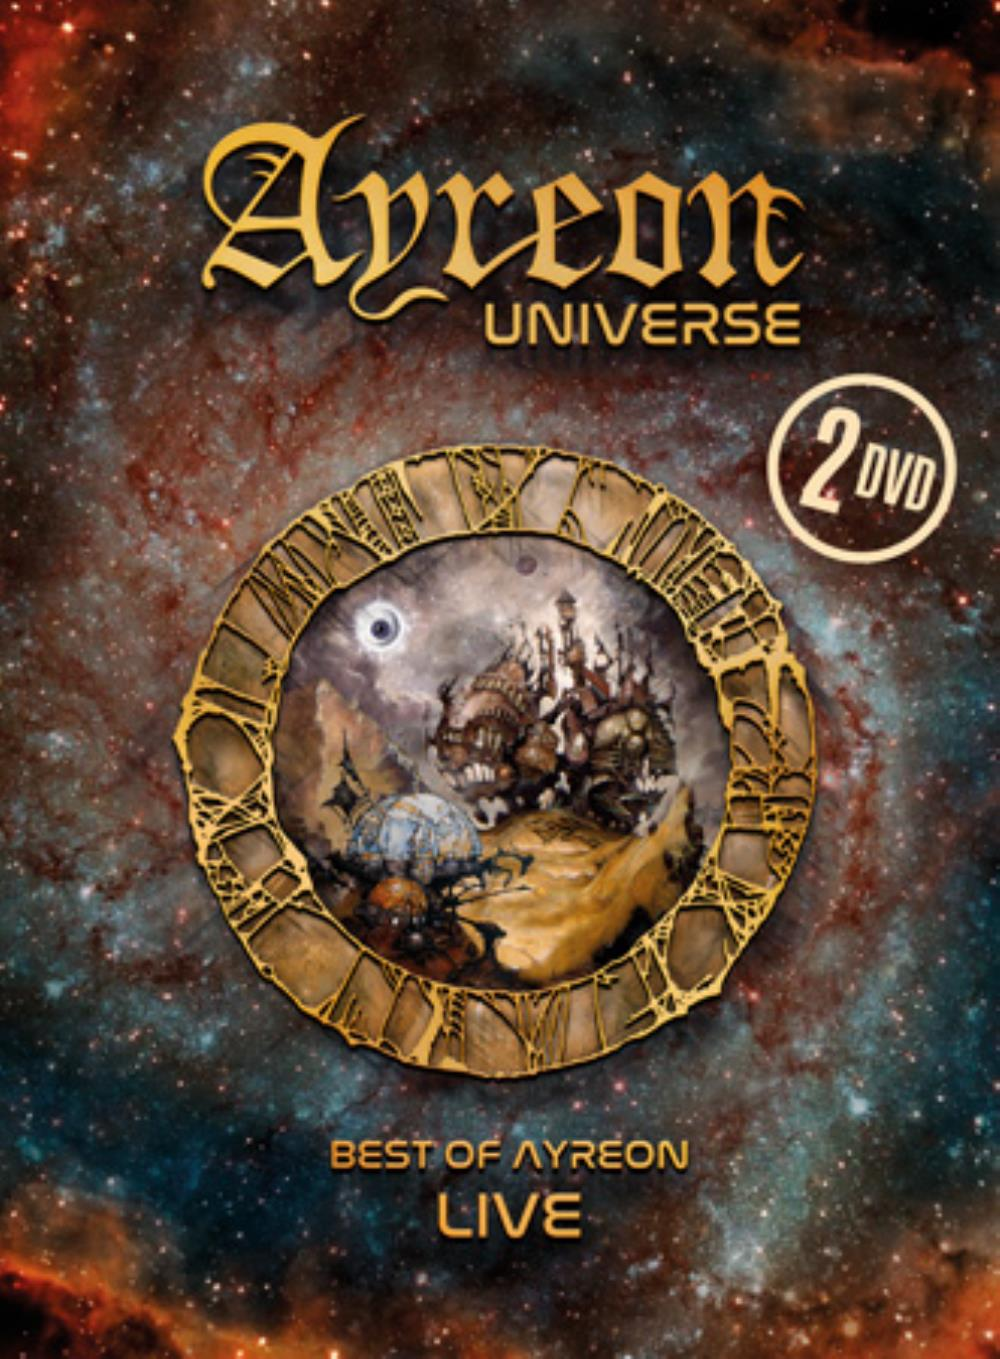 Ayreon Universe : Best of Ayreon Live by AYREON album cover